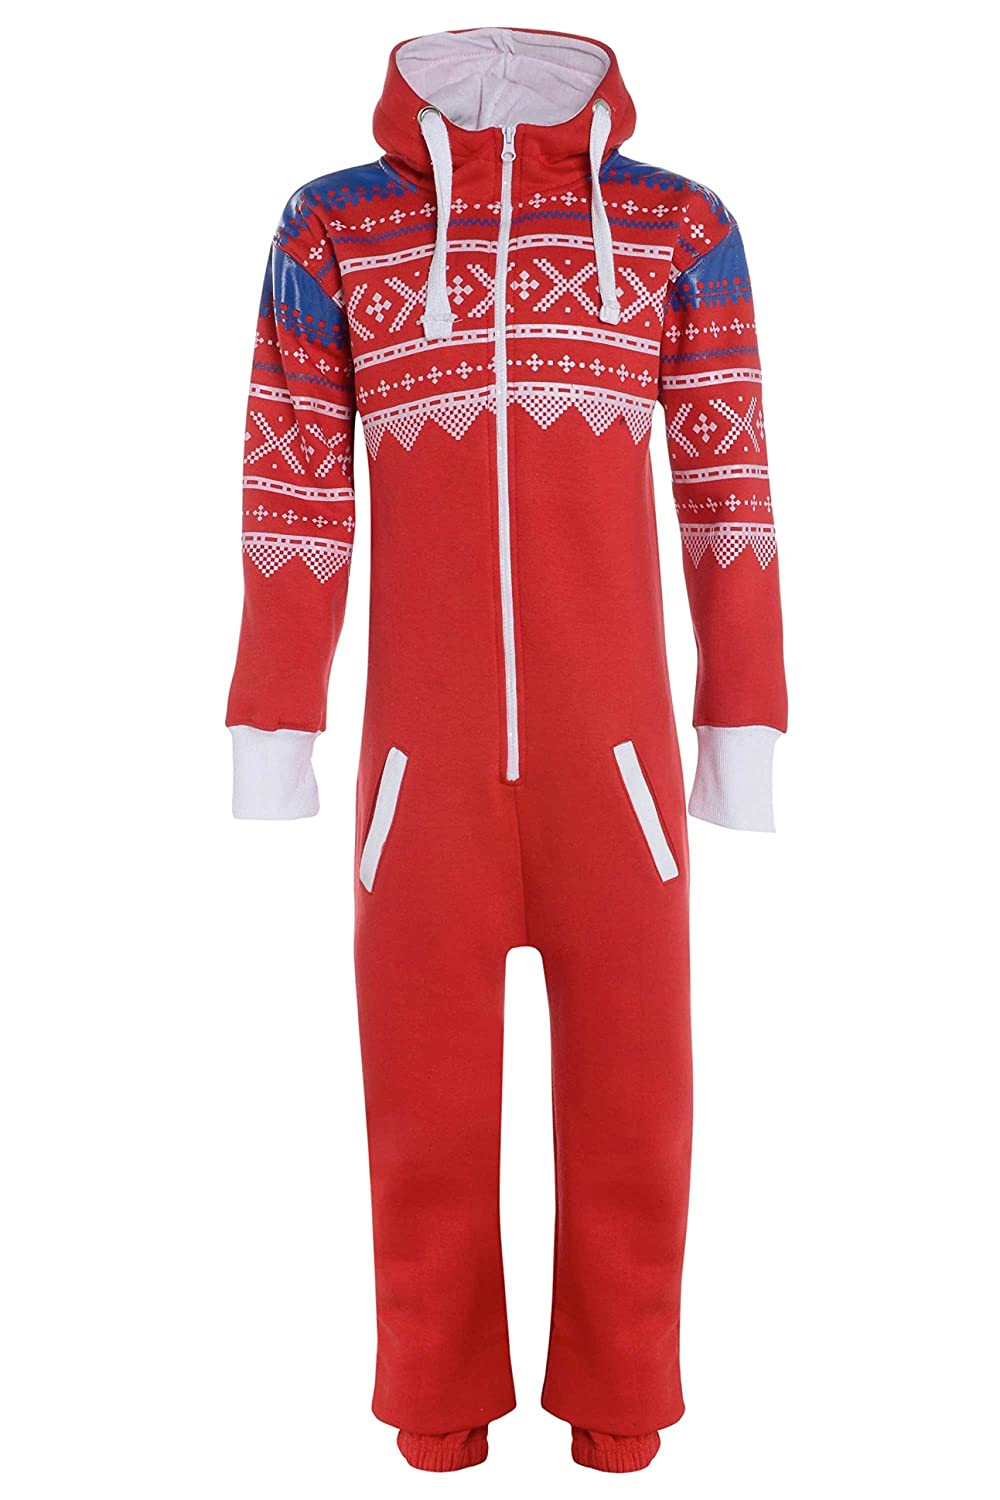 4a82d4368896 Sleepsuits   Online Shopping for Clothing